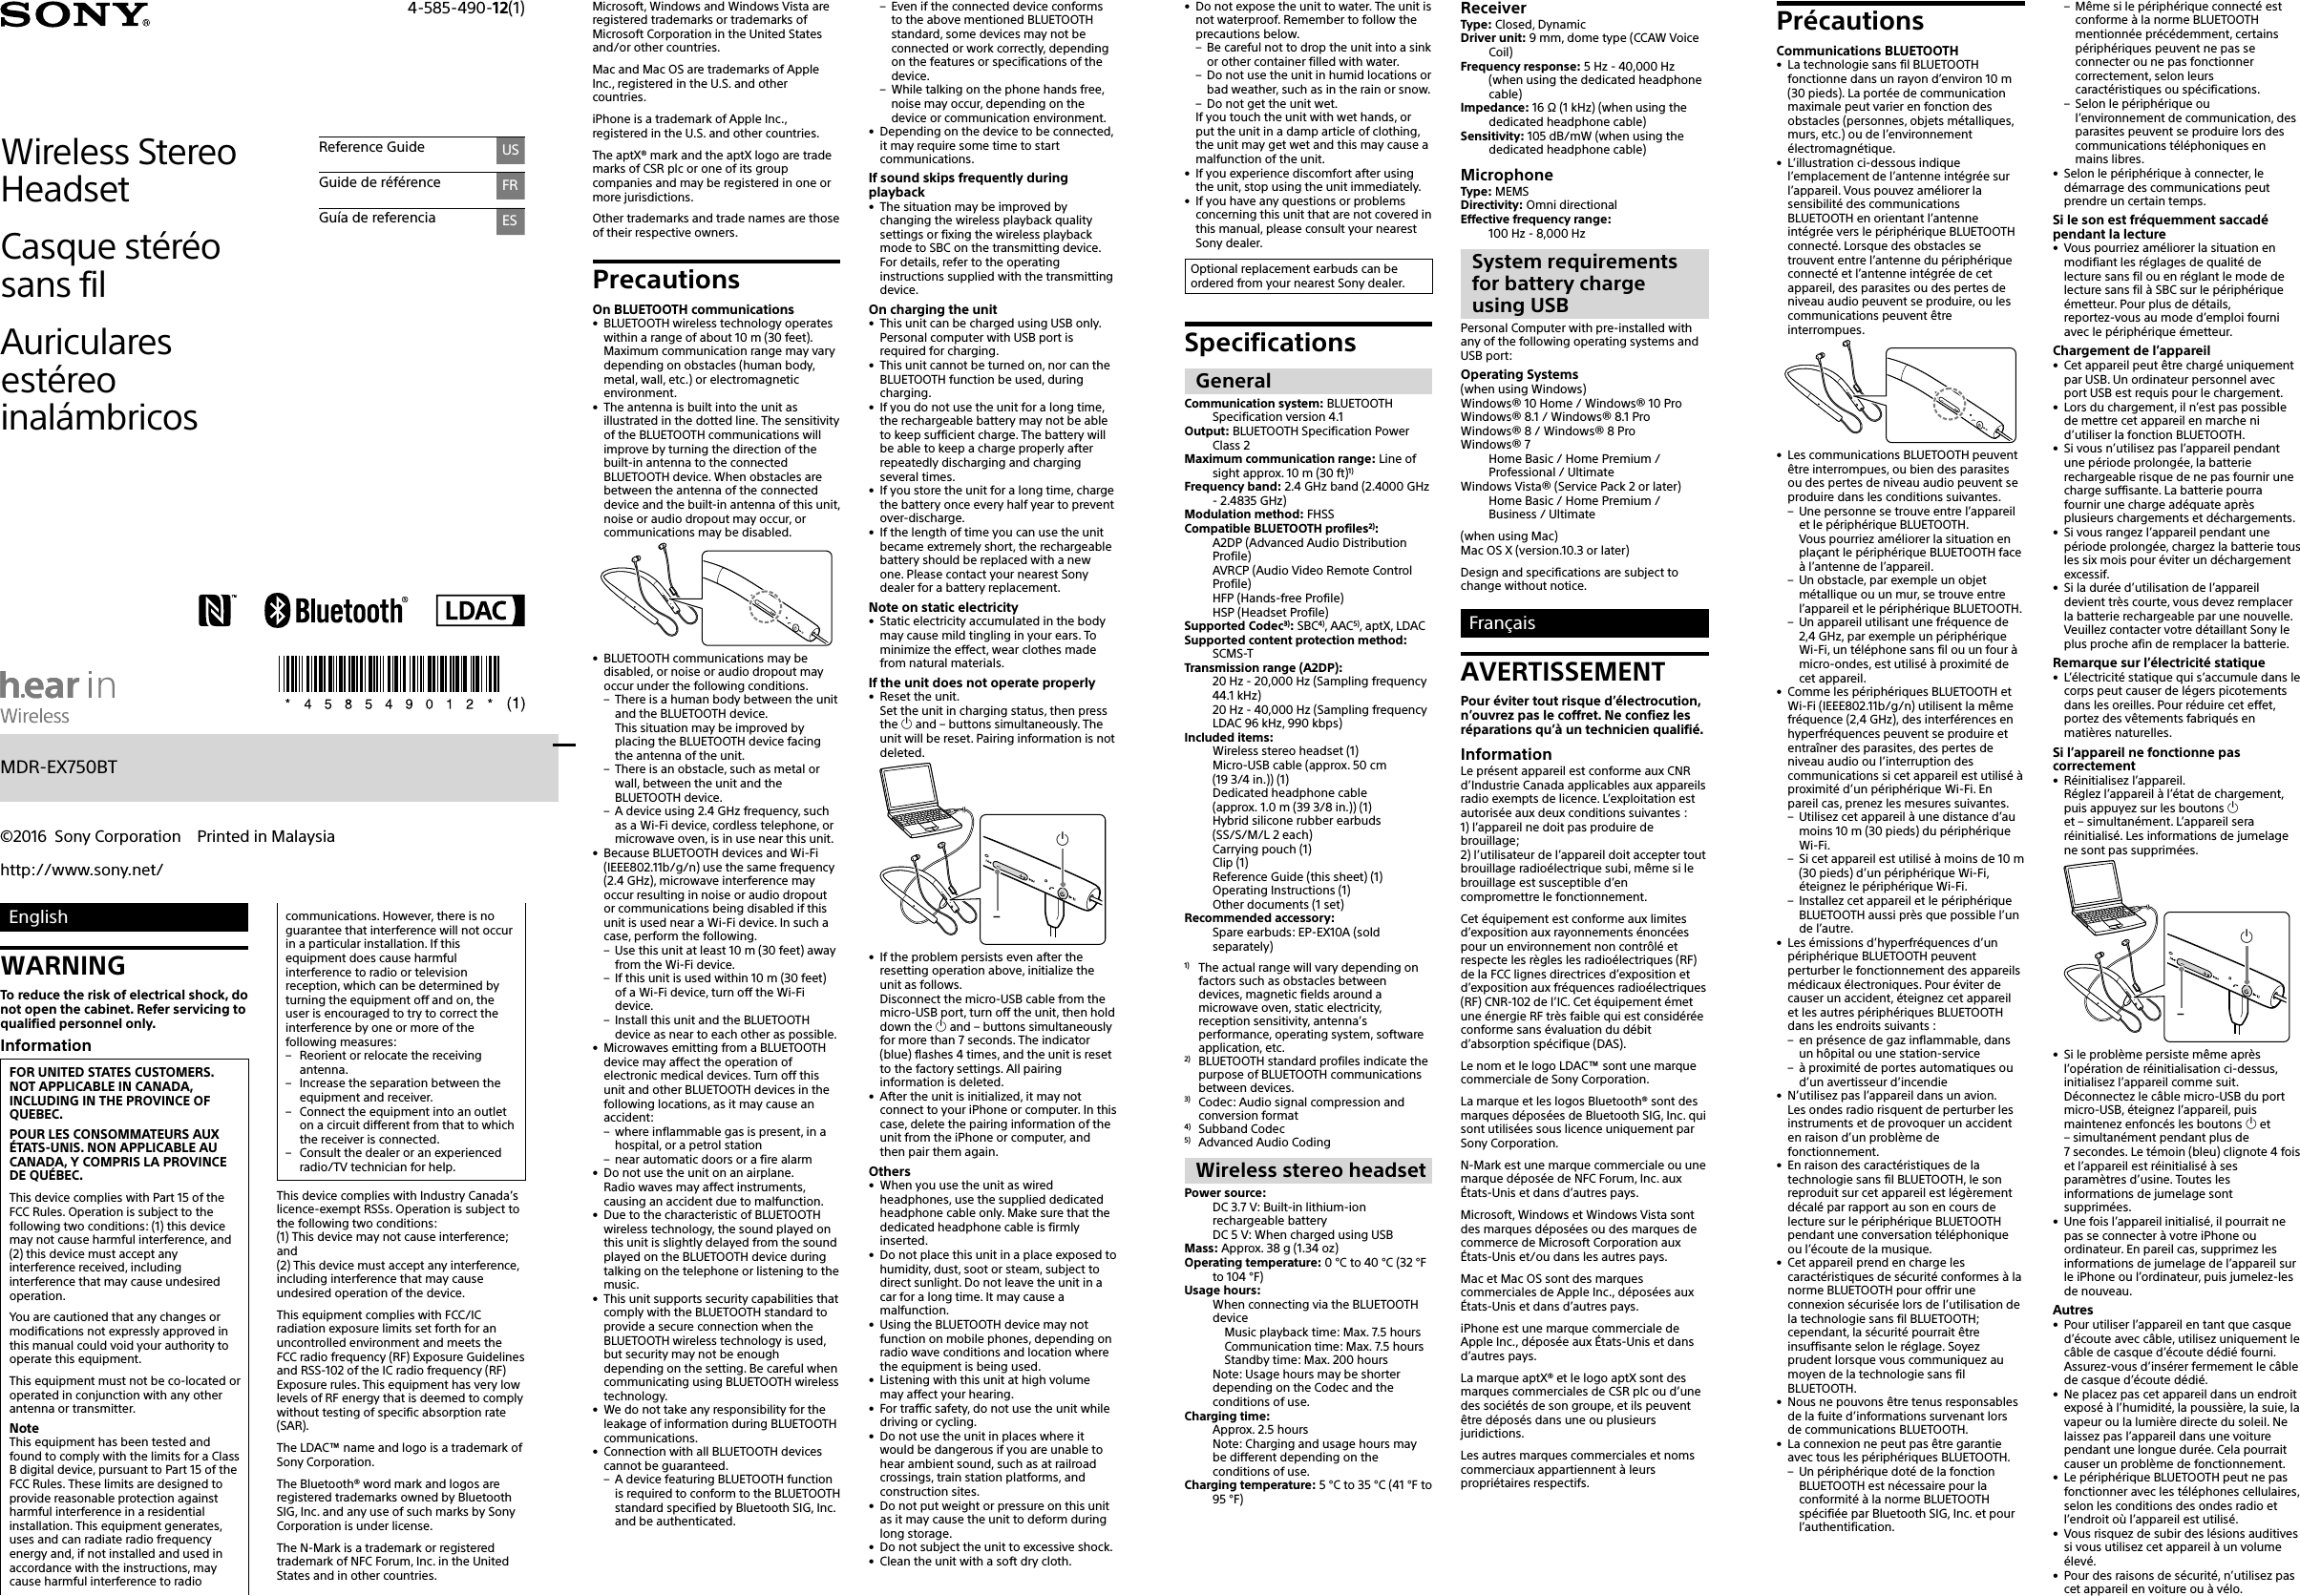 Sony Mdr Ex750bt User Manual Reference Guide Ref 4585490121